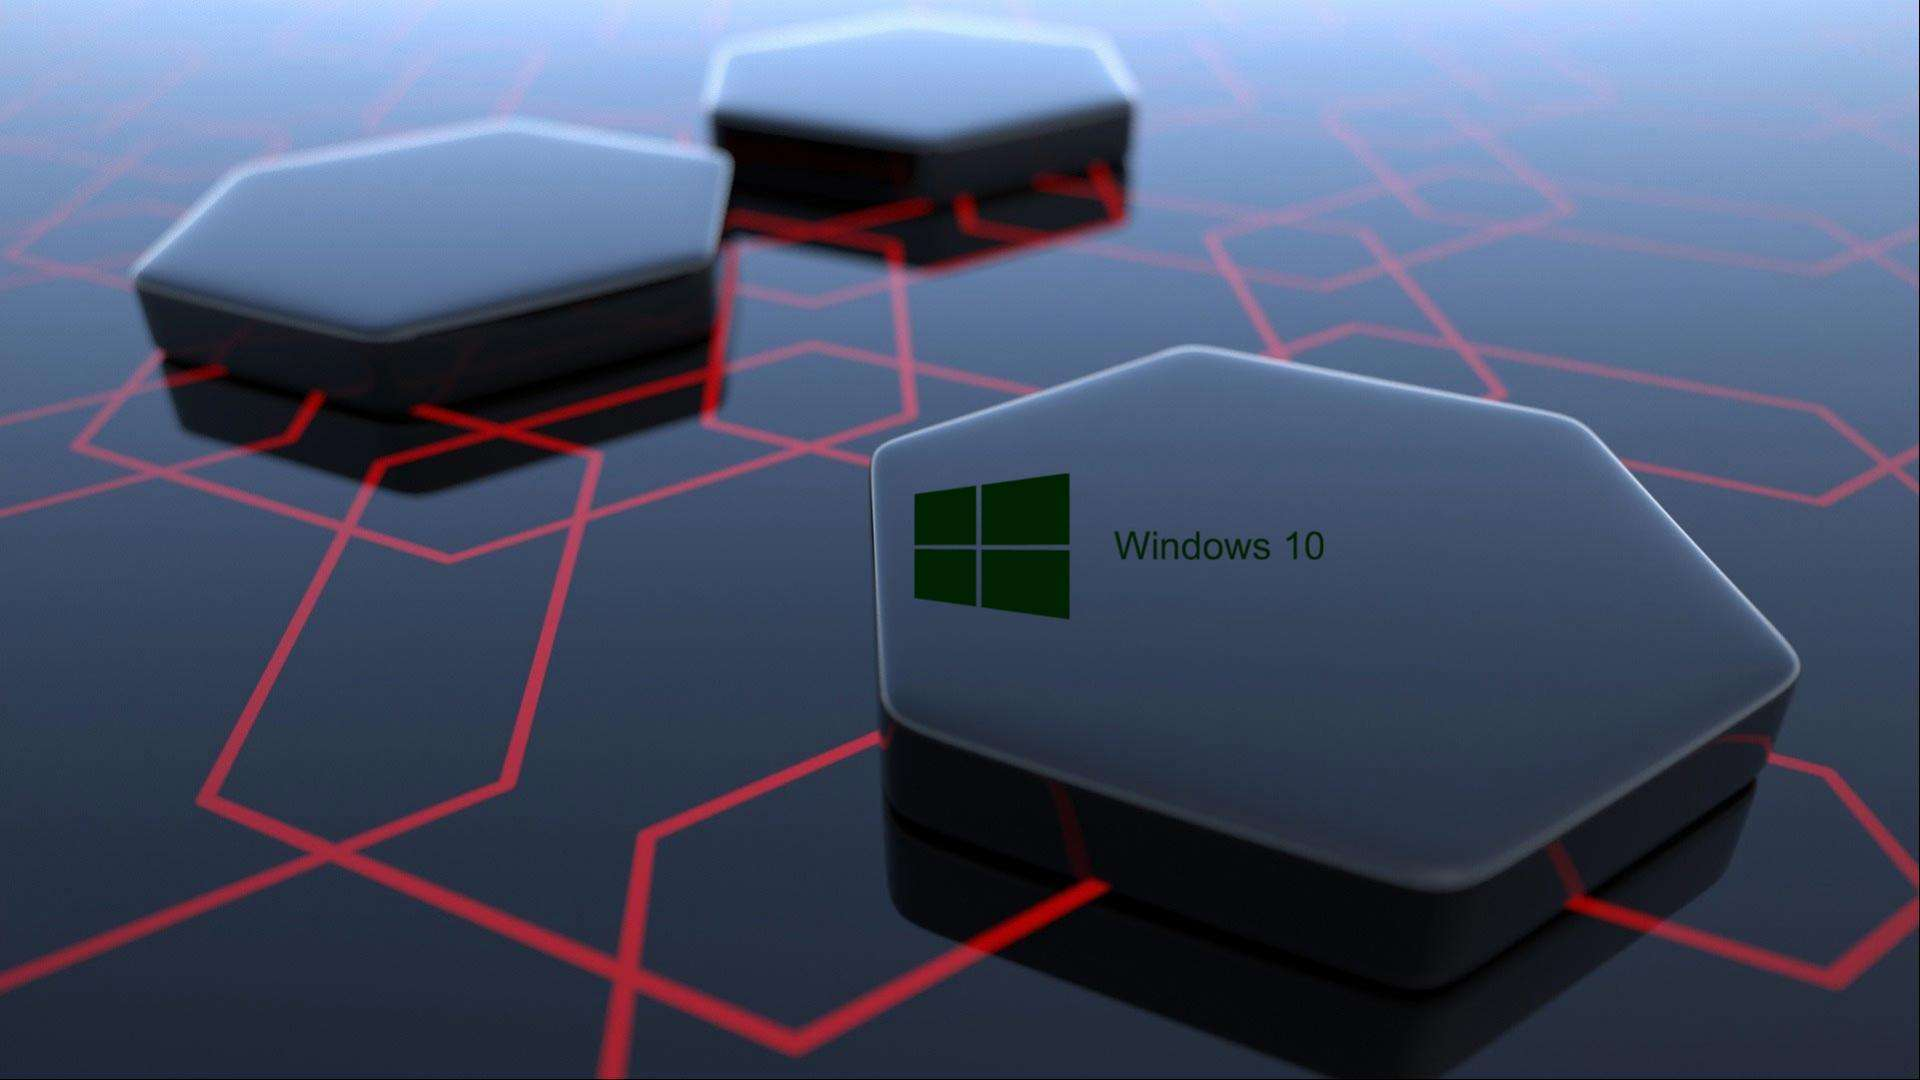 Windows 10 Wallpapers 20